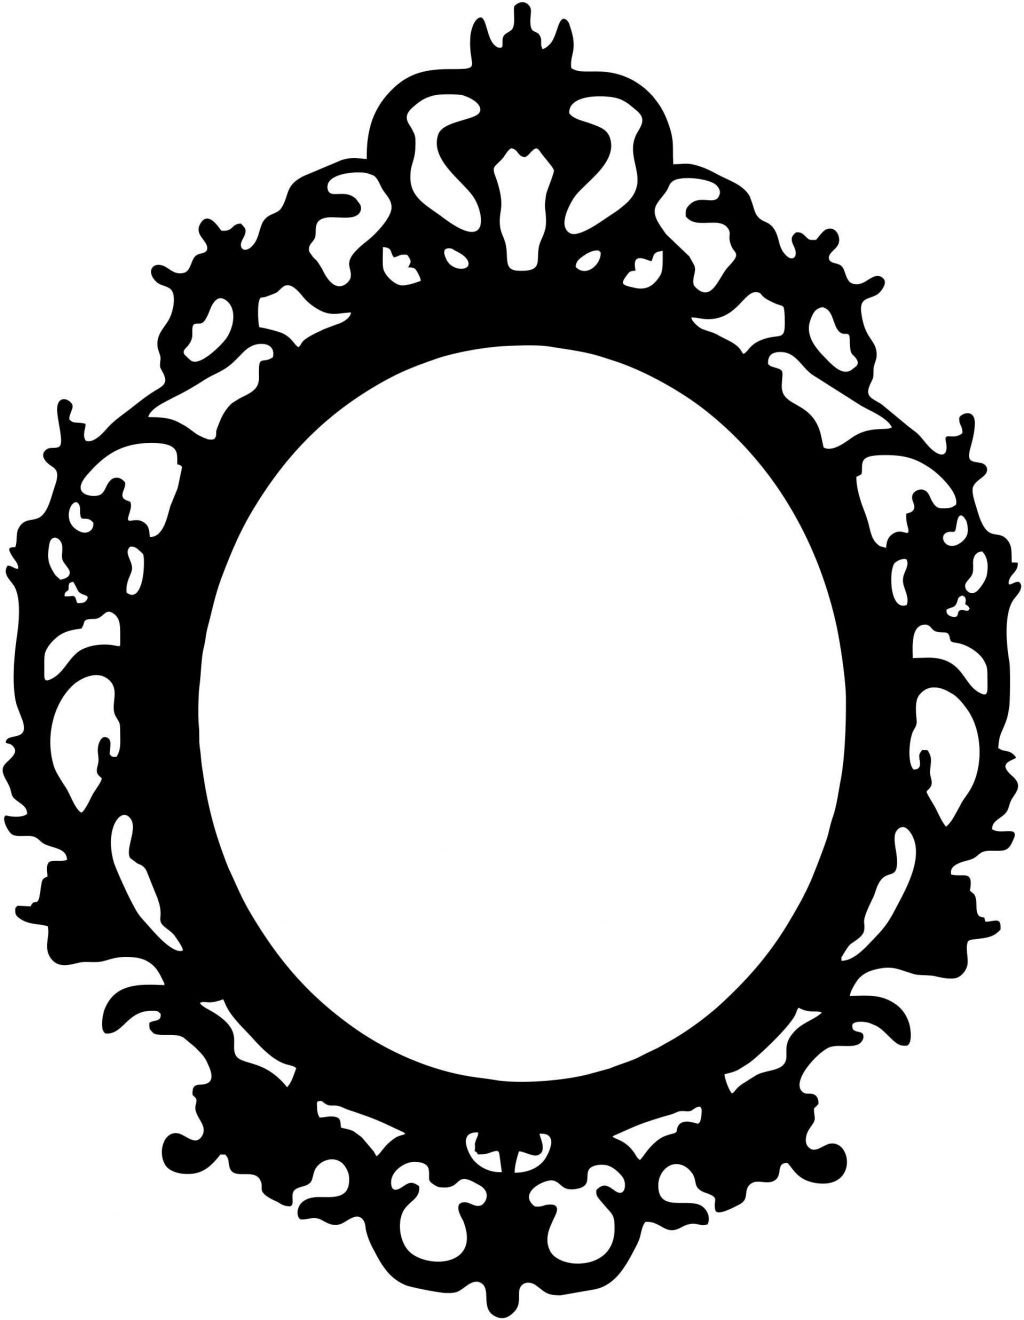 1024x1320 Top Frame Antique Oval Border Clipart Photos